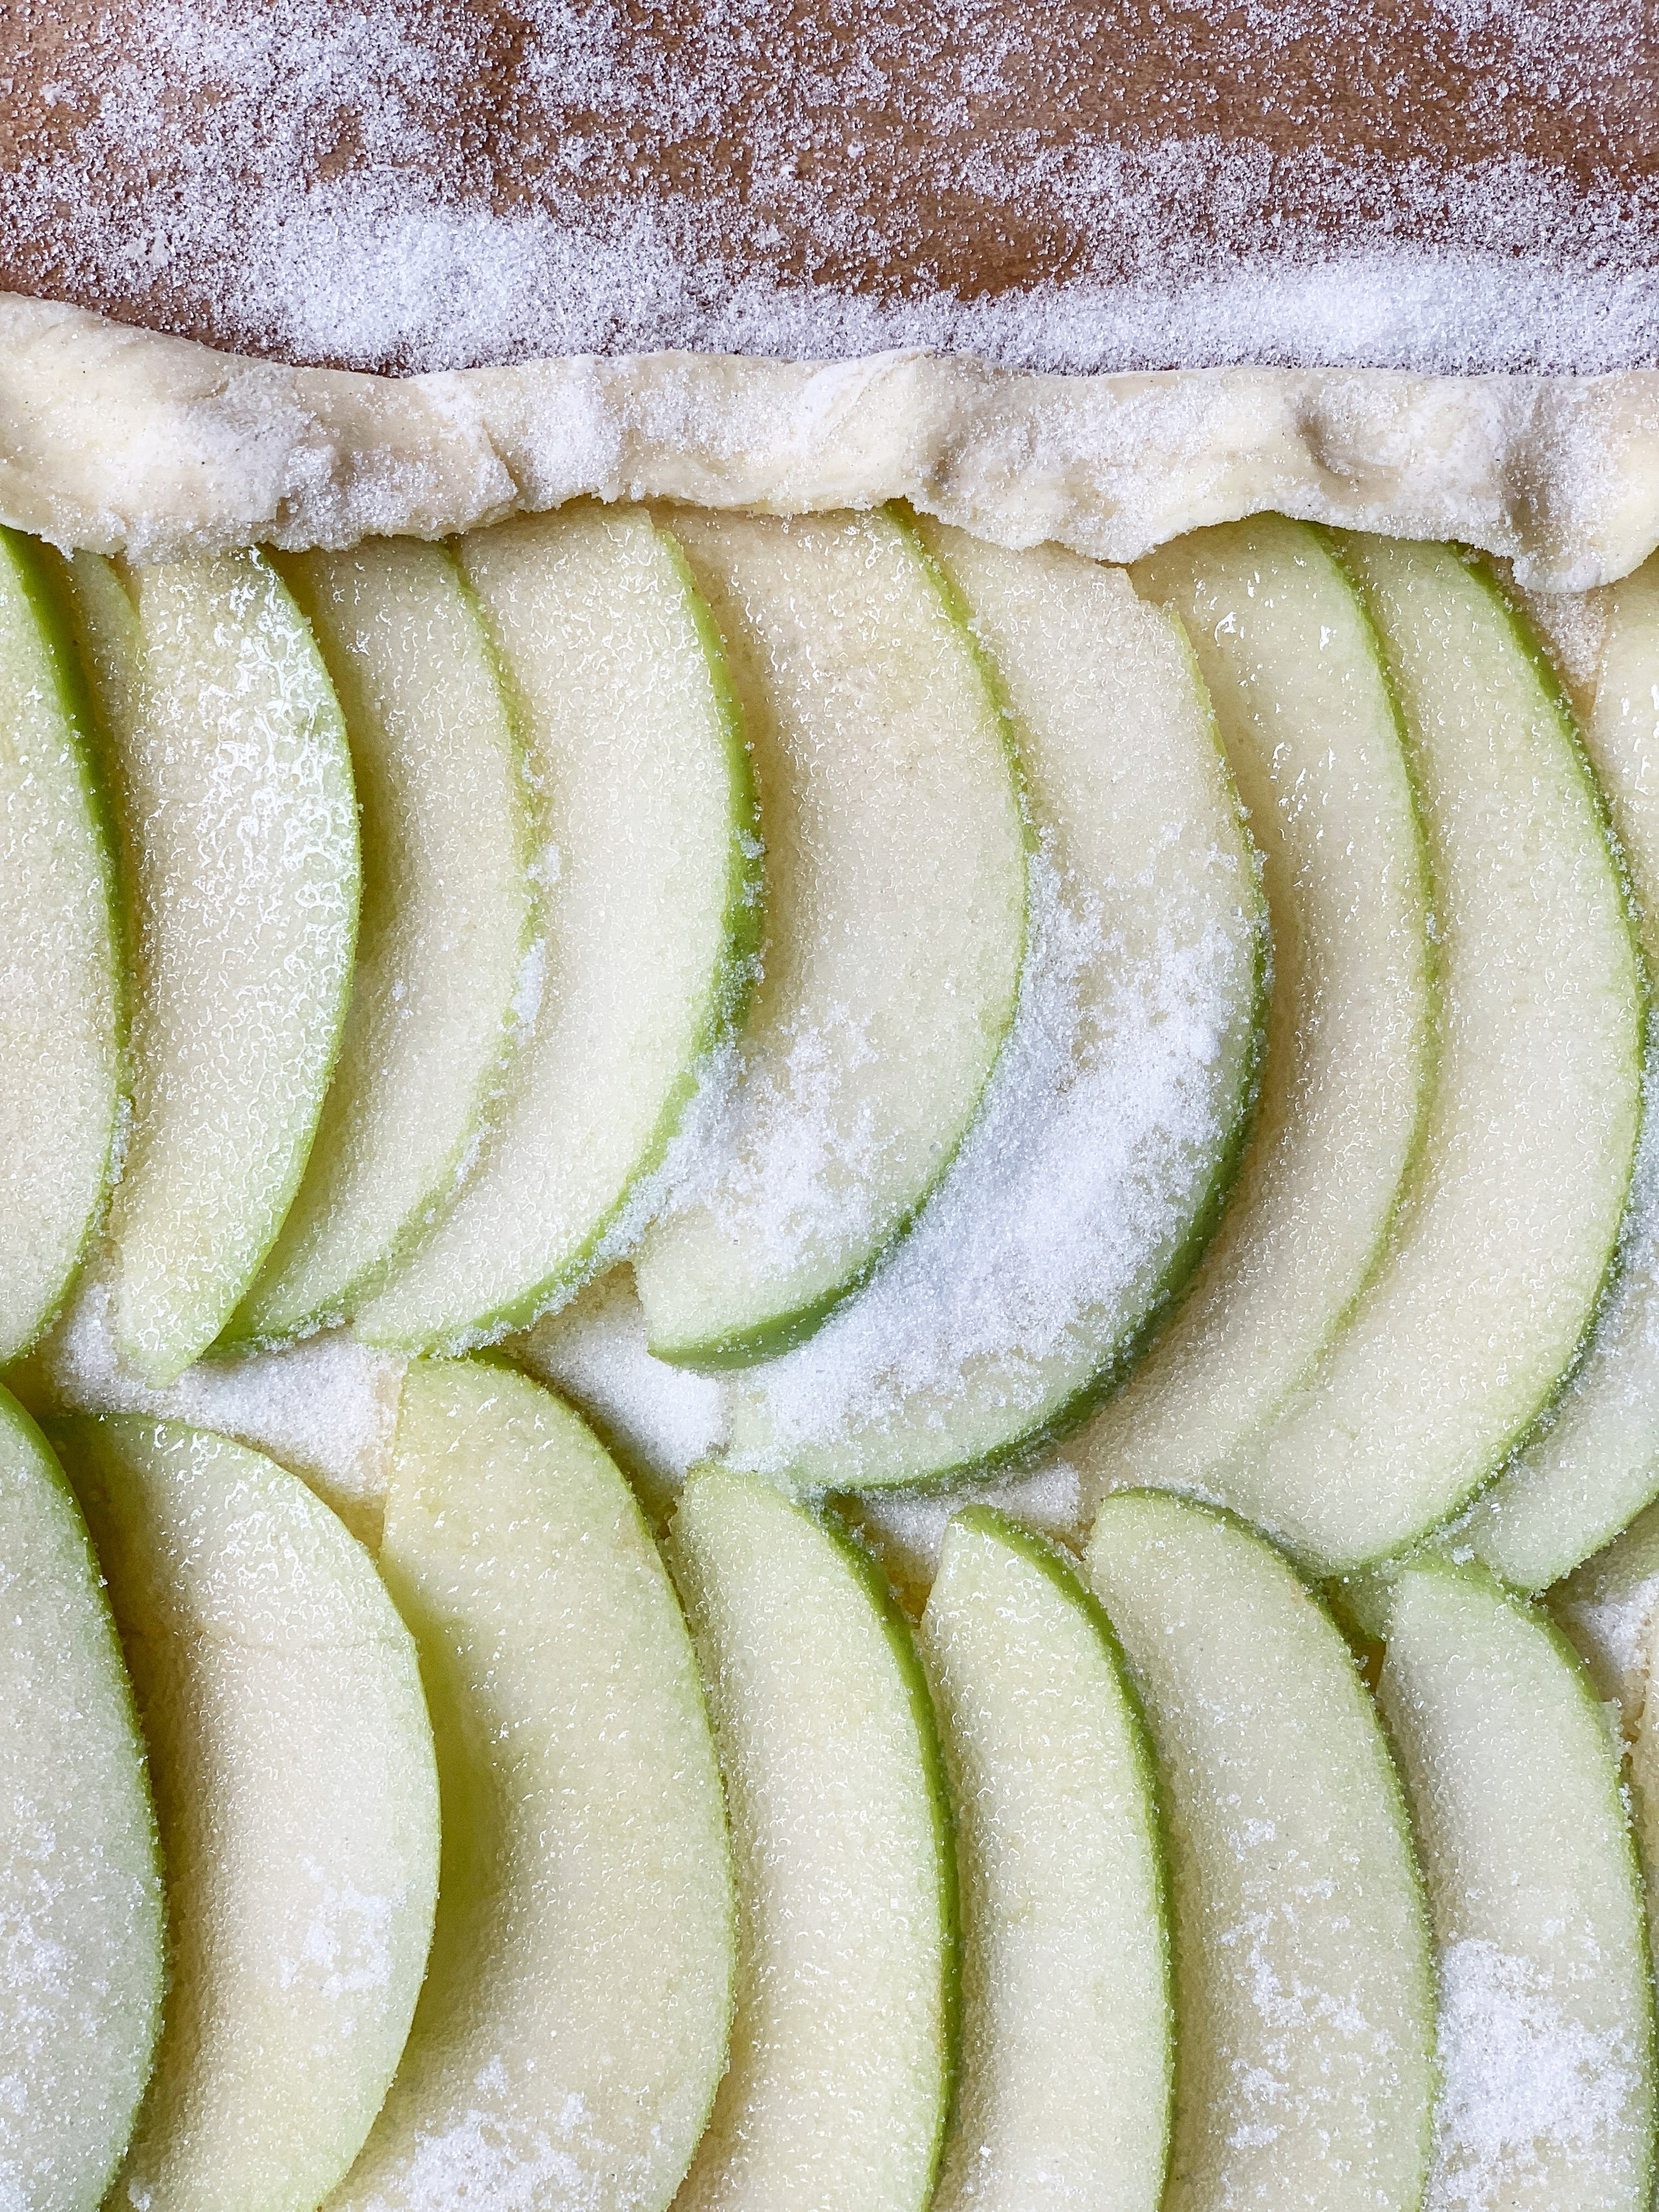 granny smith apples are best for this simple tart ~